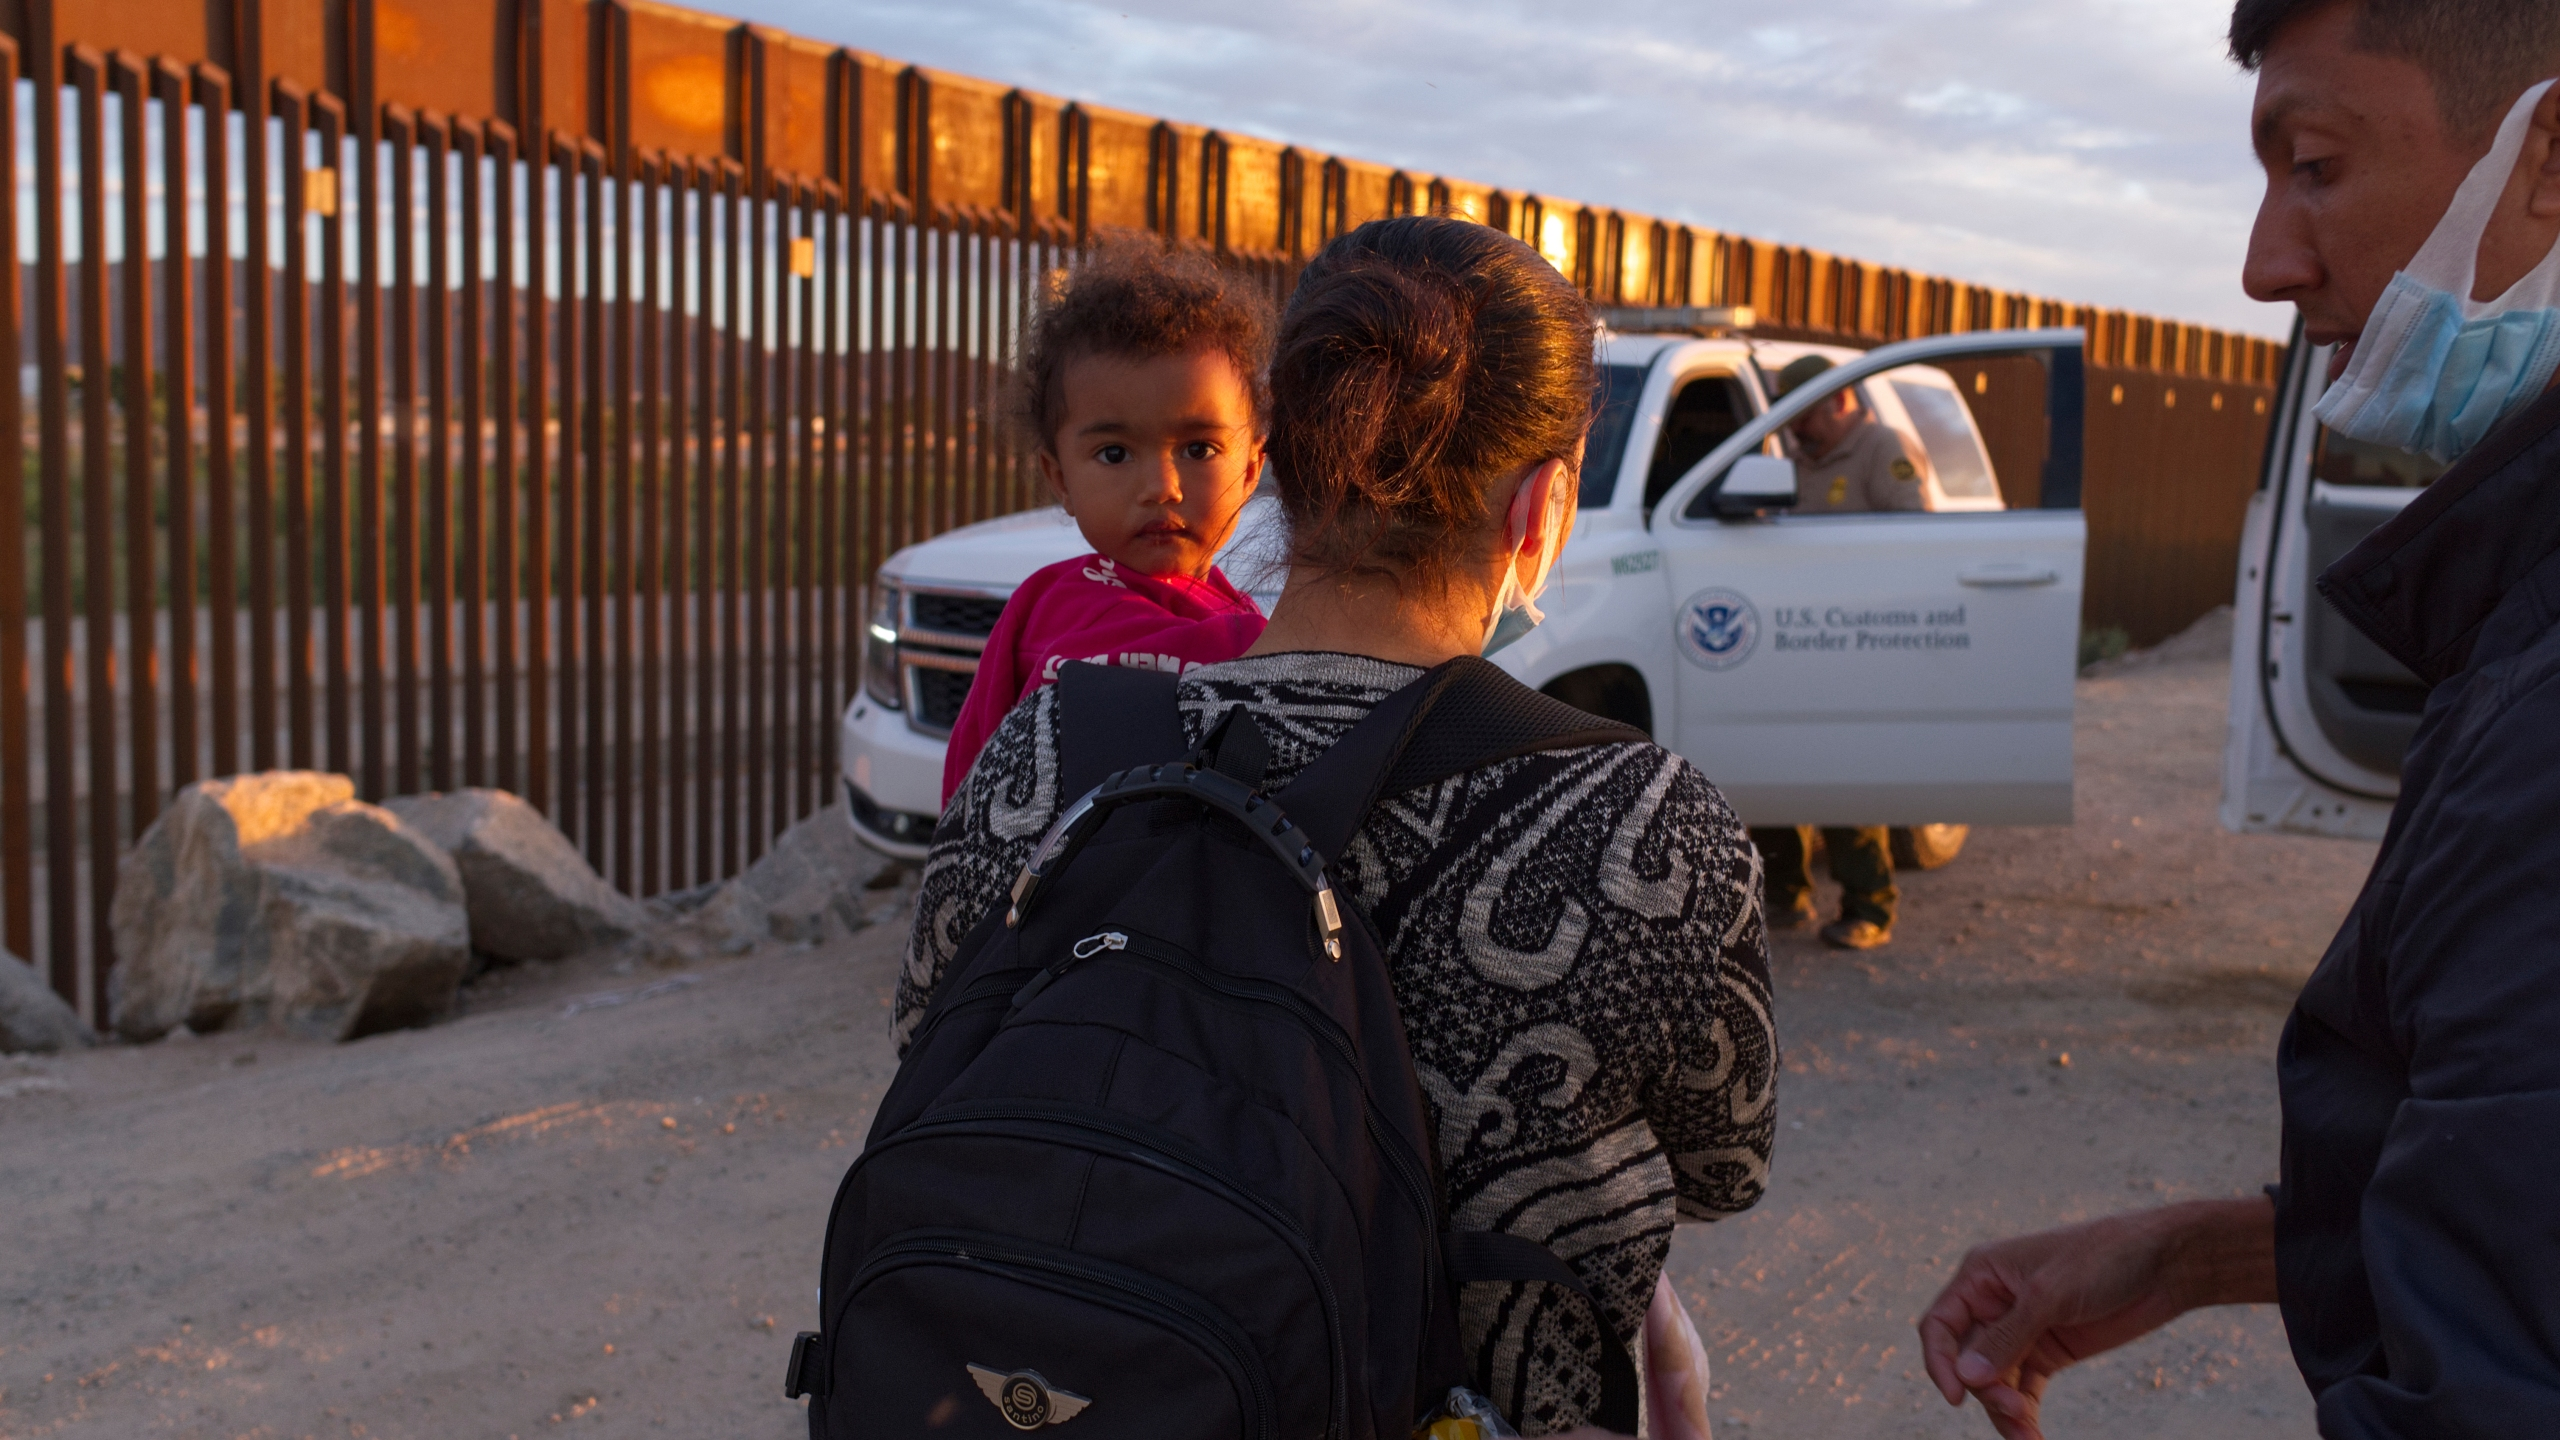 In this June 10, 2021, file photo, a migrant family from Brazil waits to be processed by U.S. Border Patrol agents after passing through a gap in the border wall from Mexico in Yuma, Ariz. U.S. officials say attempted border crossings by migrants traveling in family groups that include children increased in June by a quarter over the previous month amid rising summer temperatures in the inhospitable deserts and mountain terrain of the American Southwest. (AP Photo/Eugene Garcia, File)